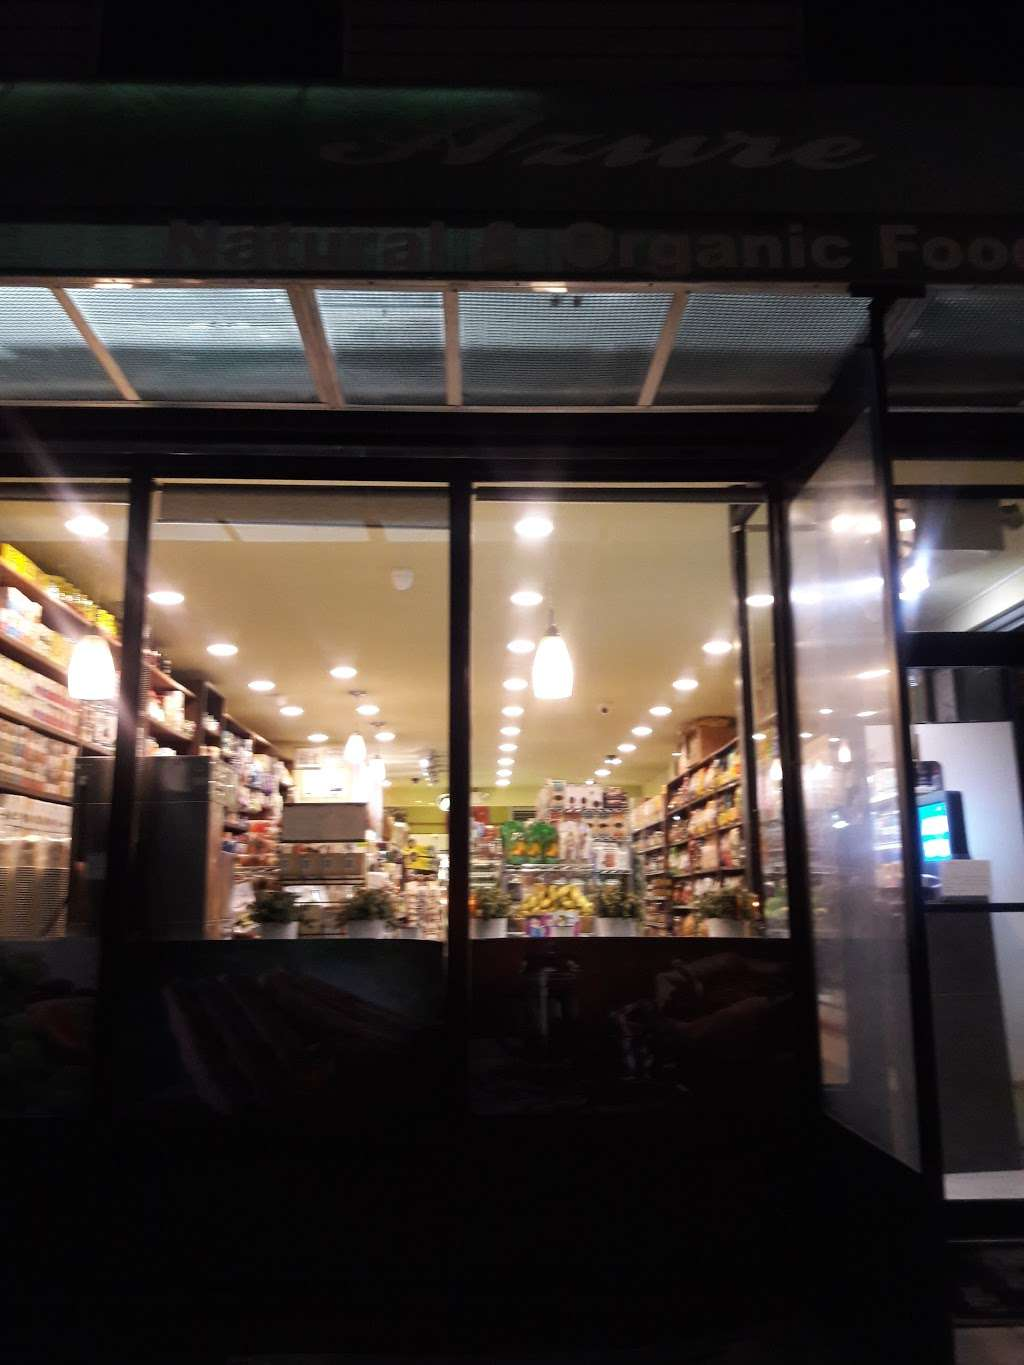 Azure Grocery - store  | Photo 5 of 6 | Address: 187 Montrose Ave, Brooklyn, NY 11206, USA | Phone: (718) 599-7887